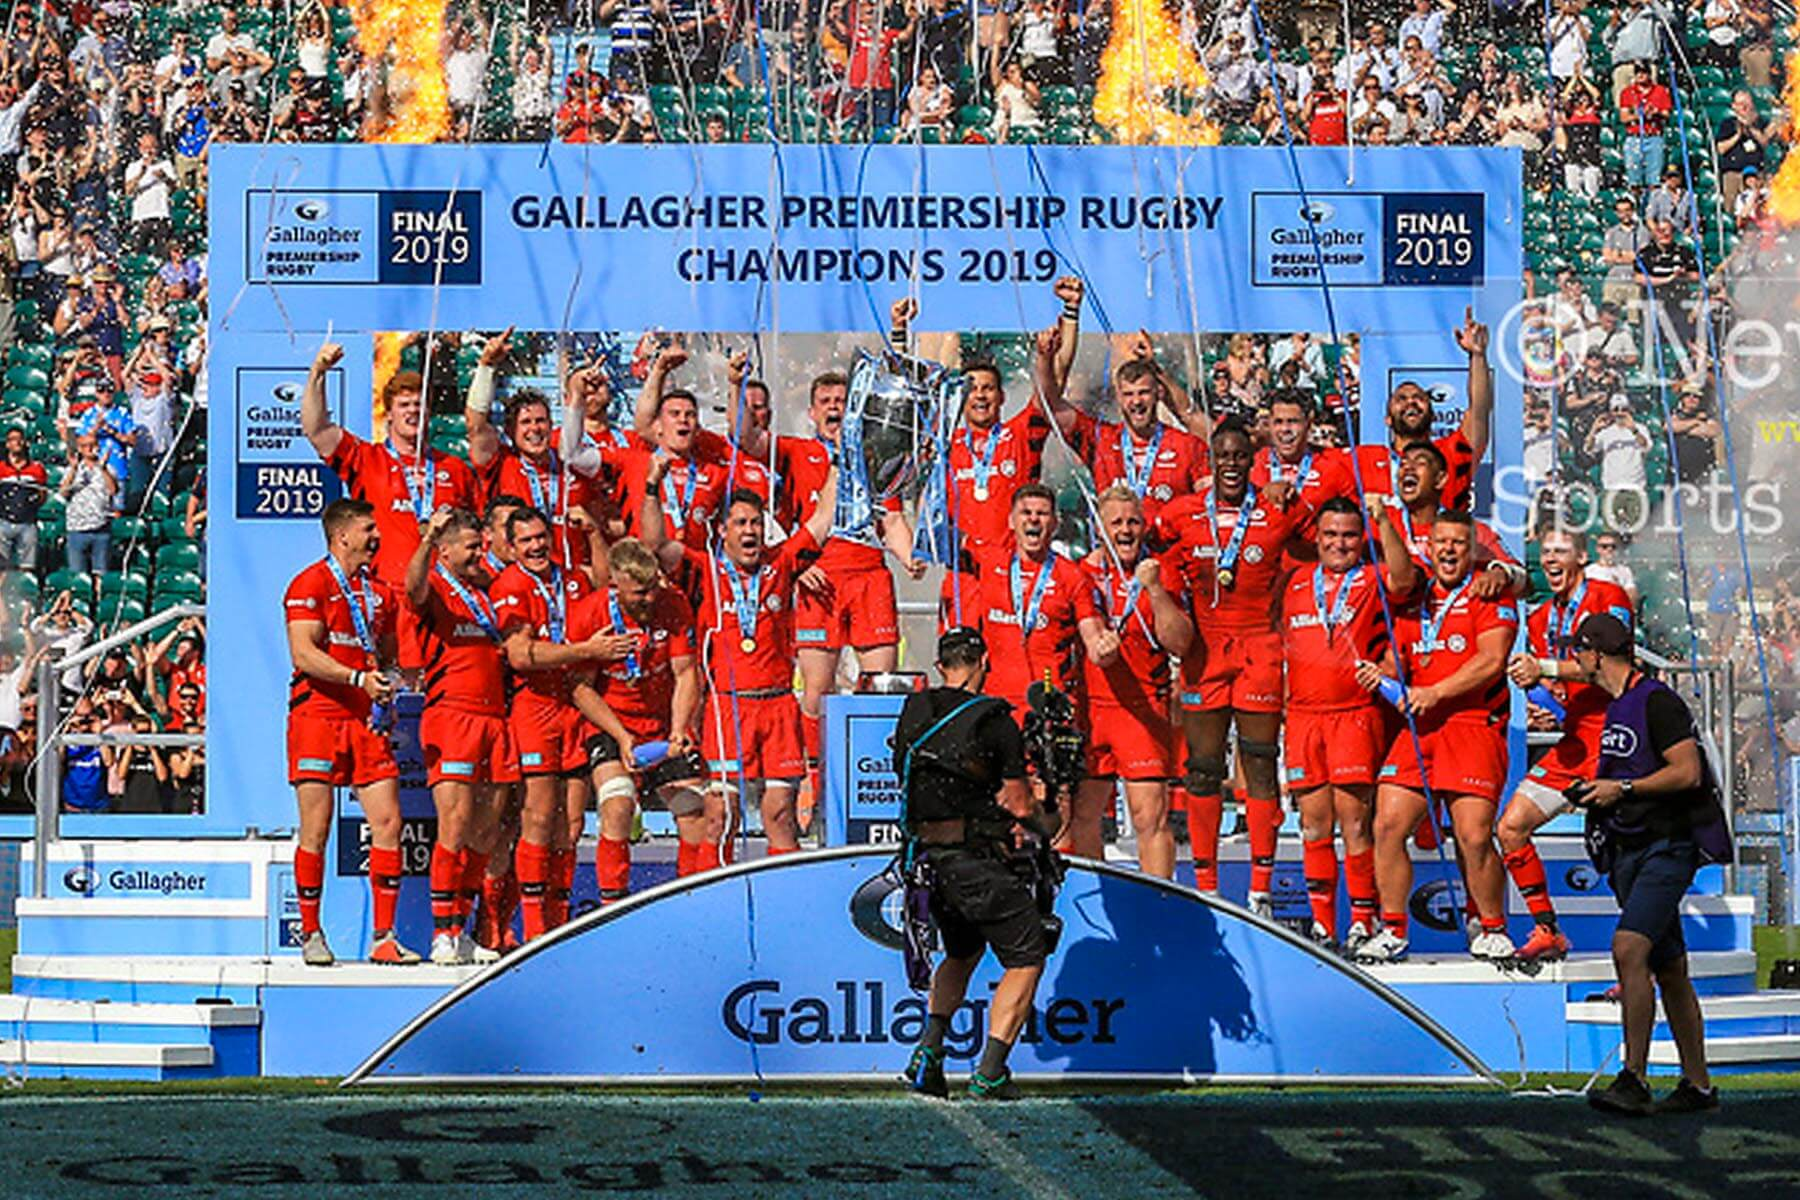 2 Tier Large Presentation Stage Hire for Gallagher Premiership Rugby 2019